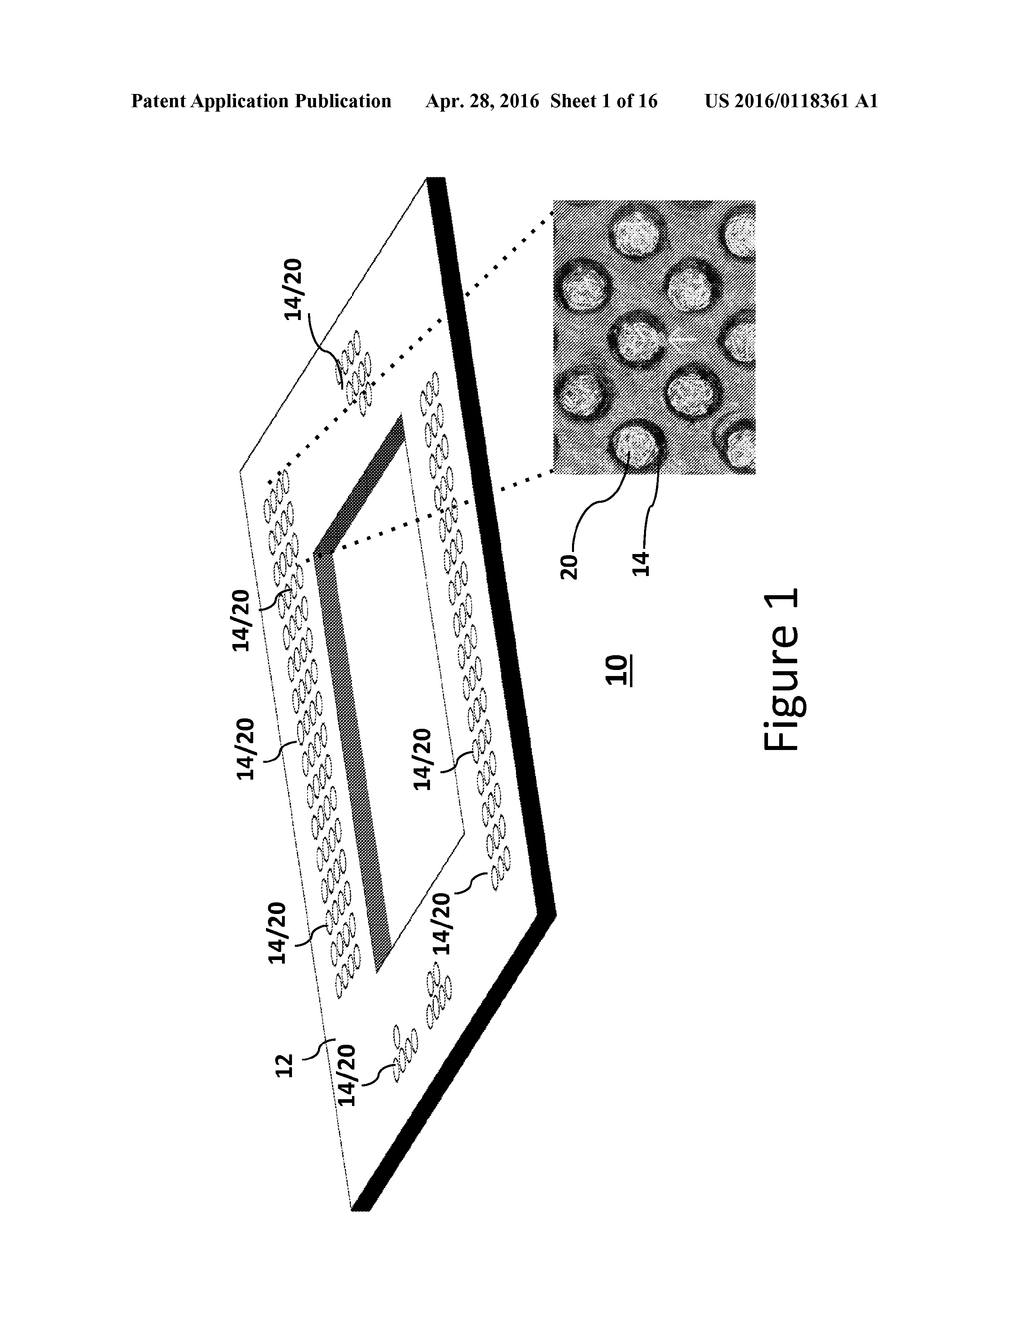 Integrated Circuit Package Structure And Interface Conductive Uses Of Connector Element For Use With Same Diagram Schematic Image 02